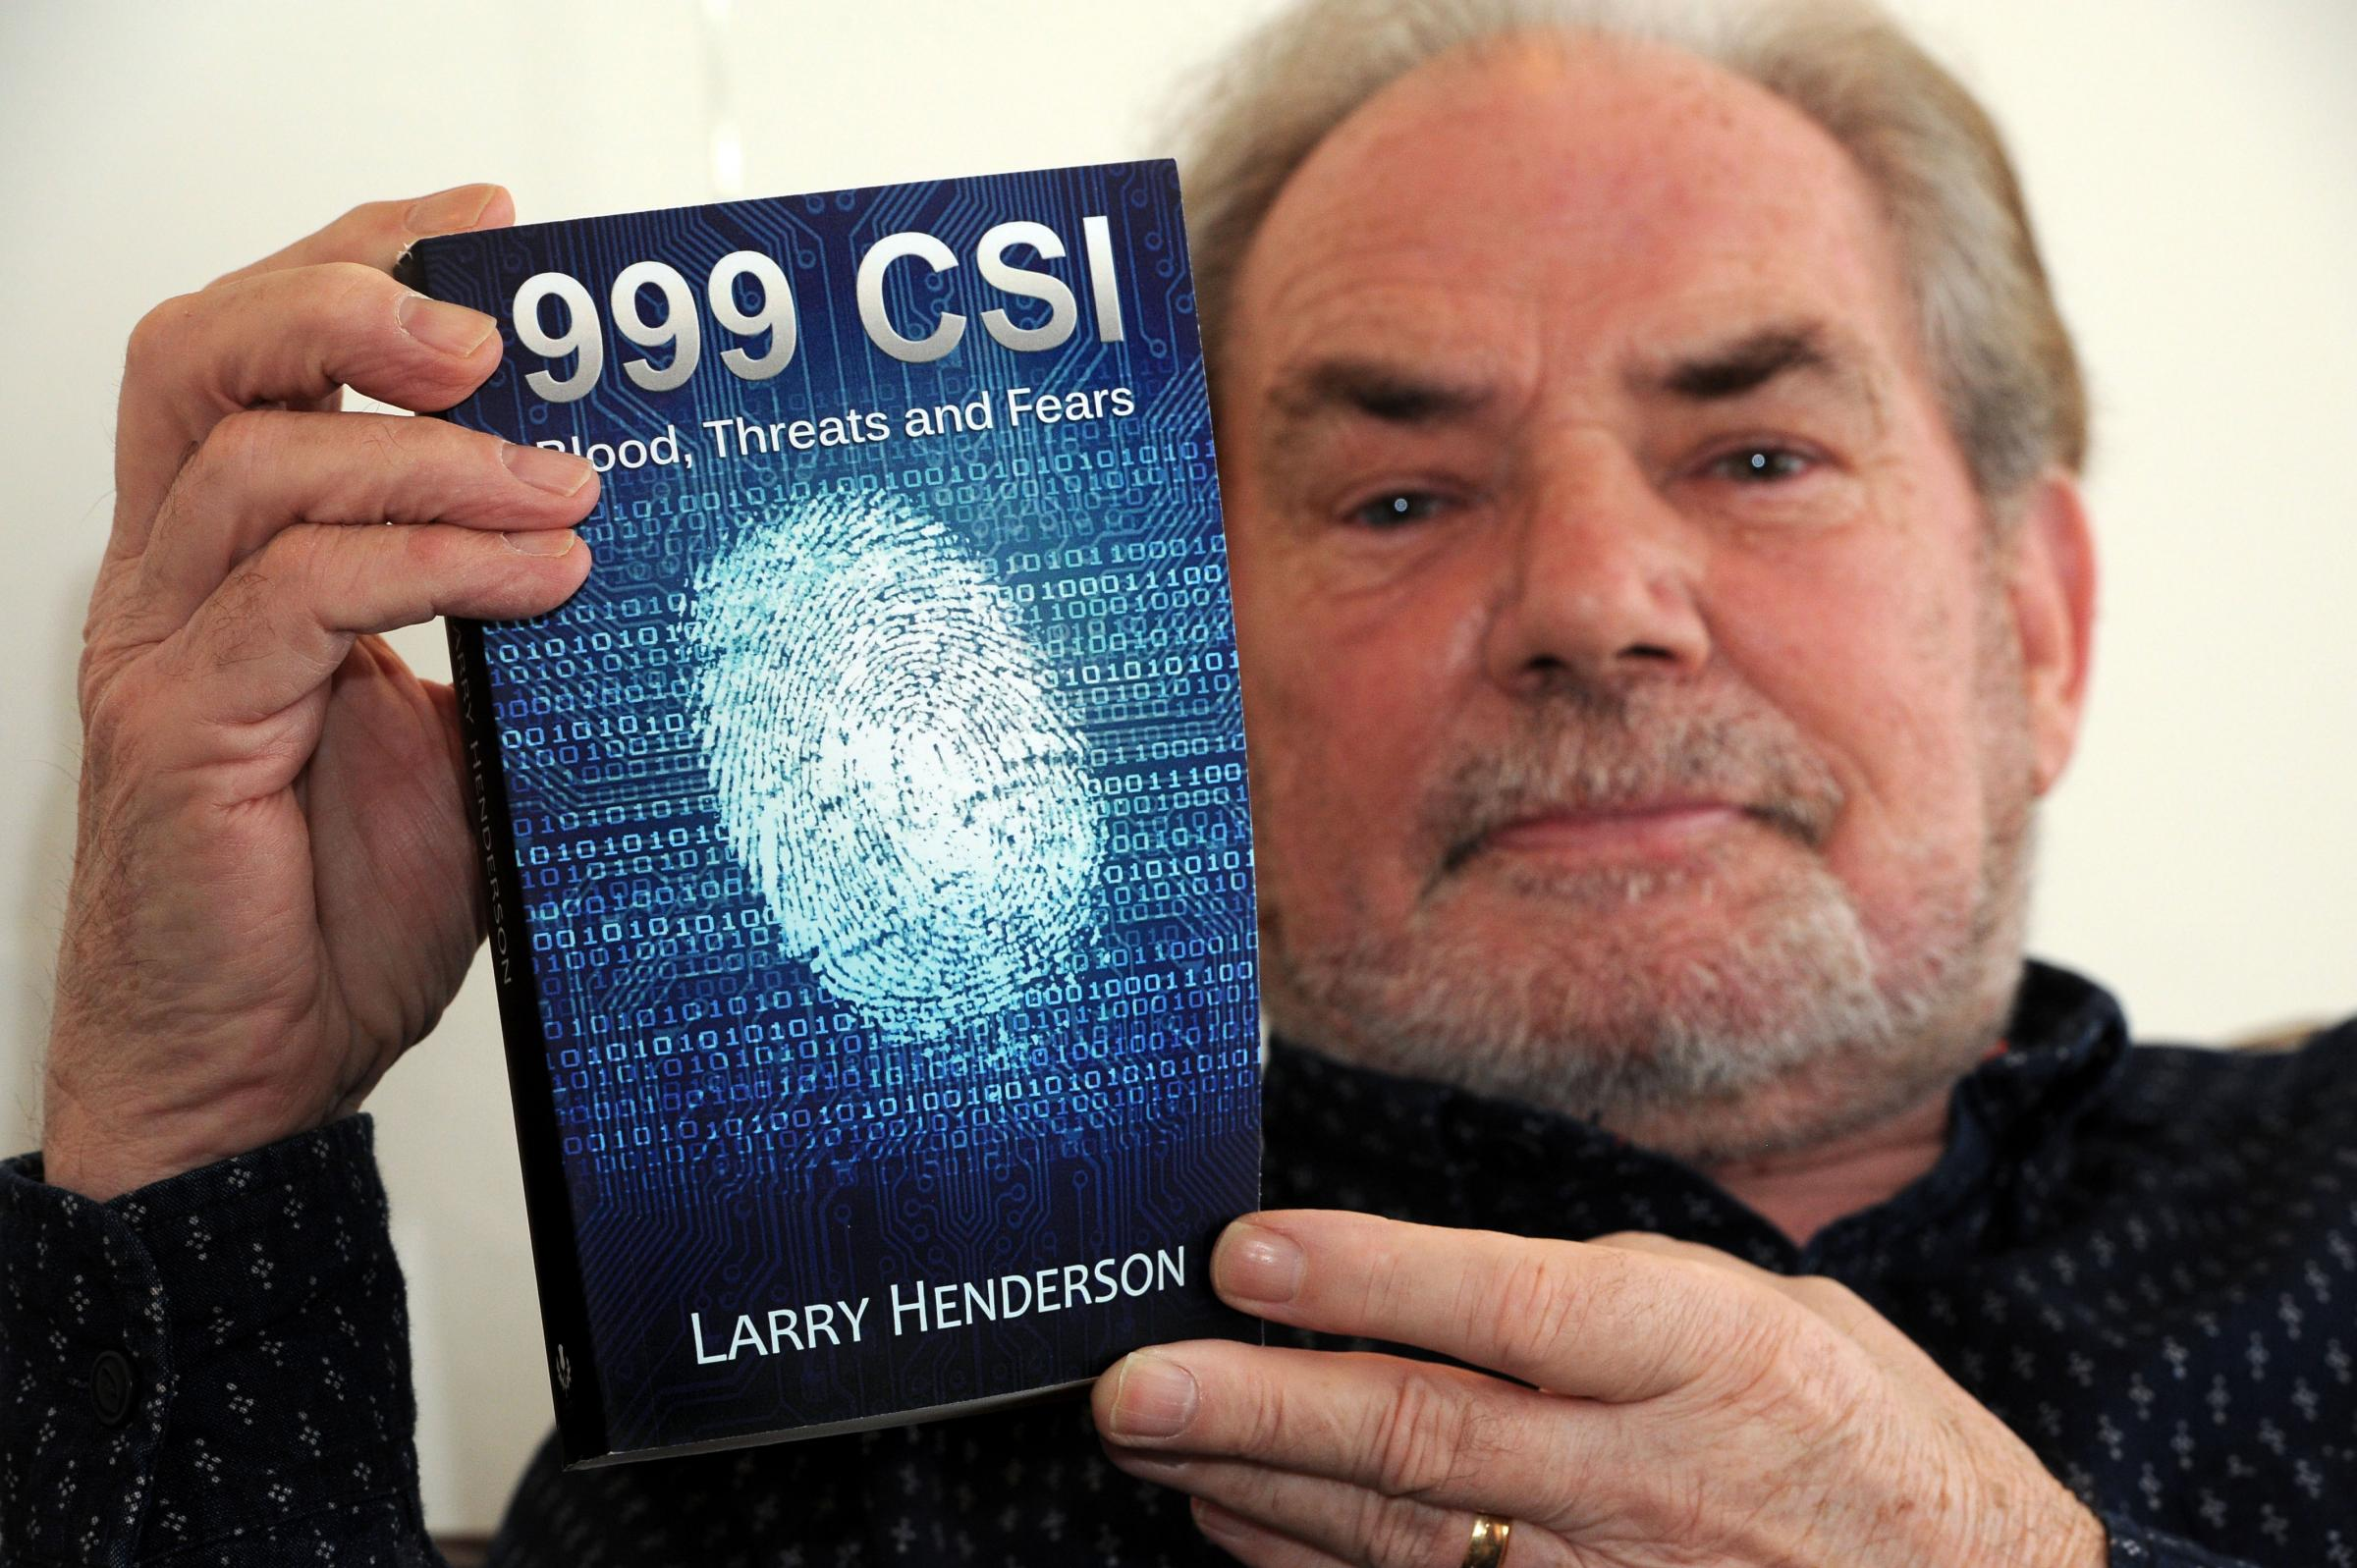 Epsom investigator lifts the lid on more than 20 years of CSI – including investigating Lord Lucan and Christine Keeler